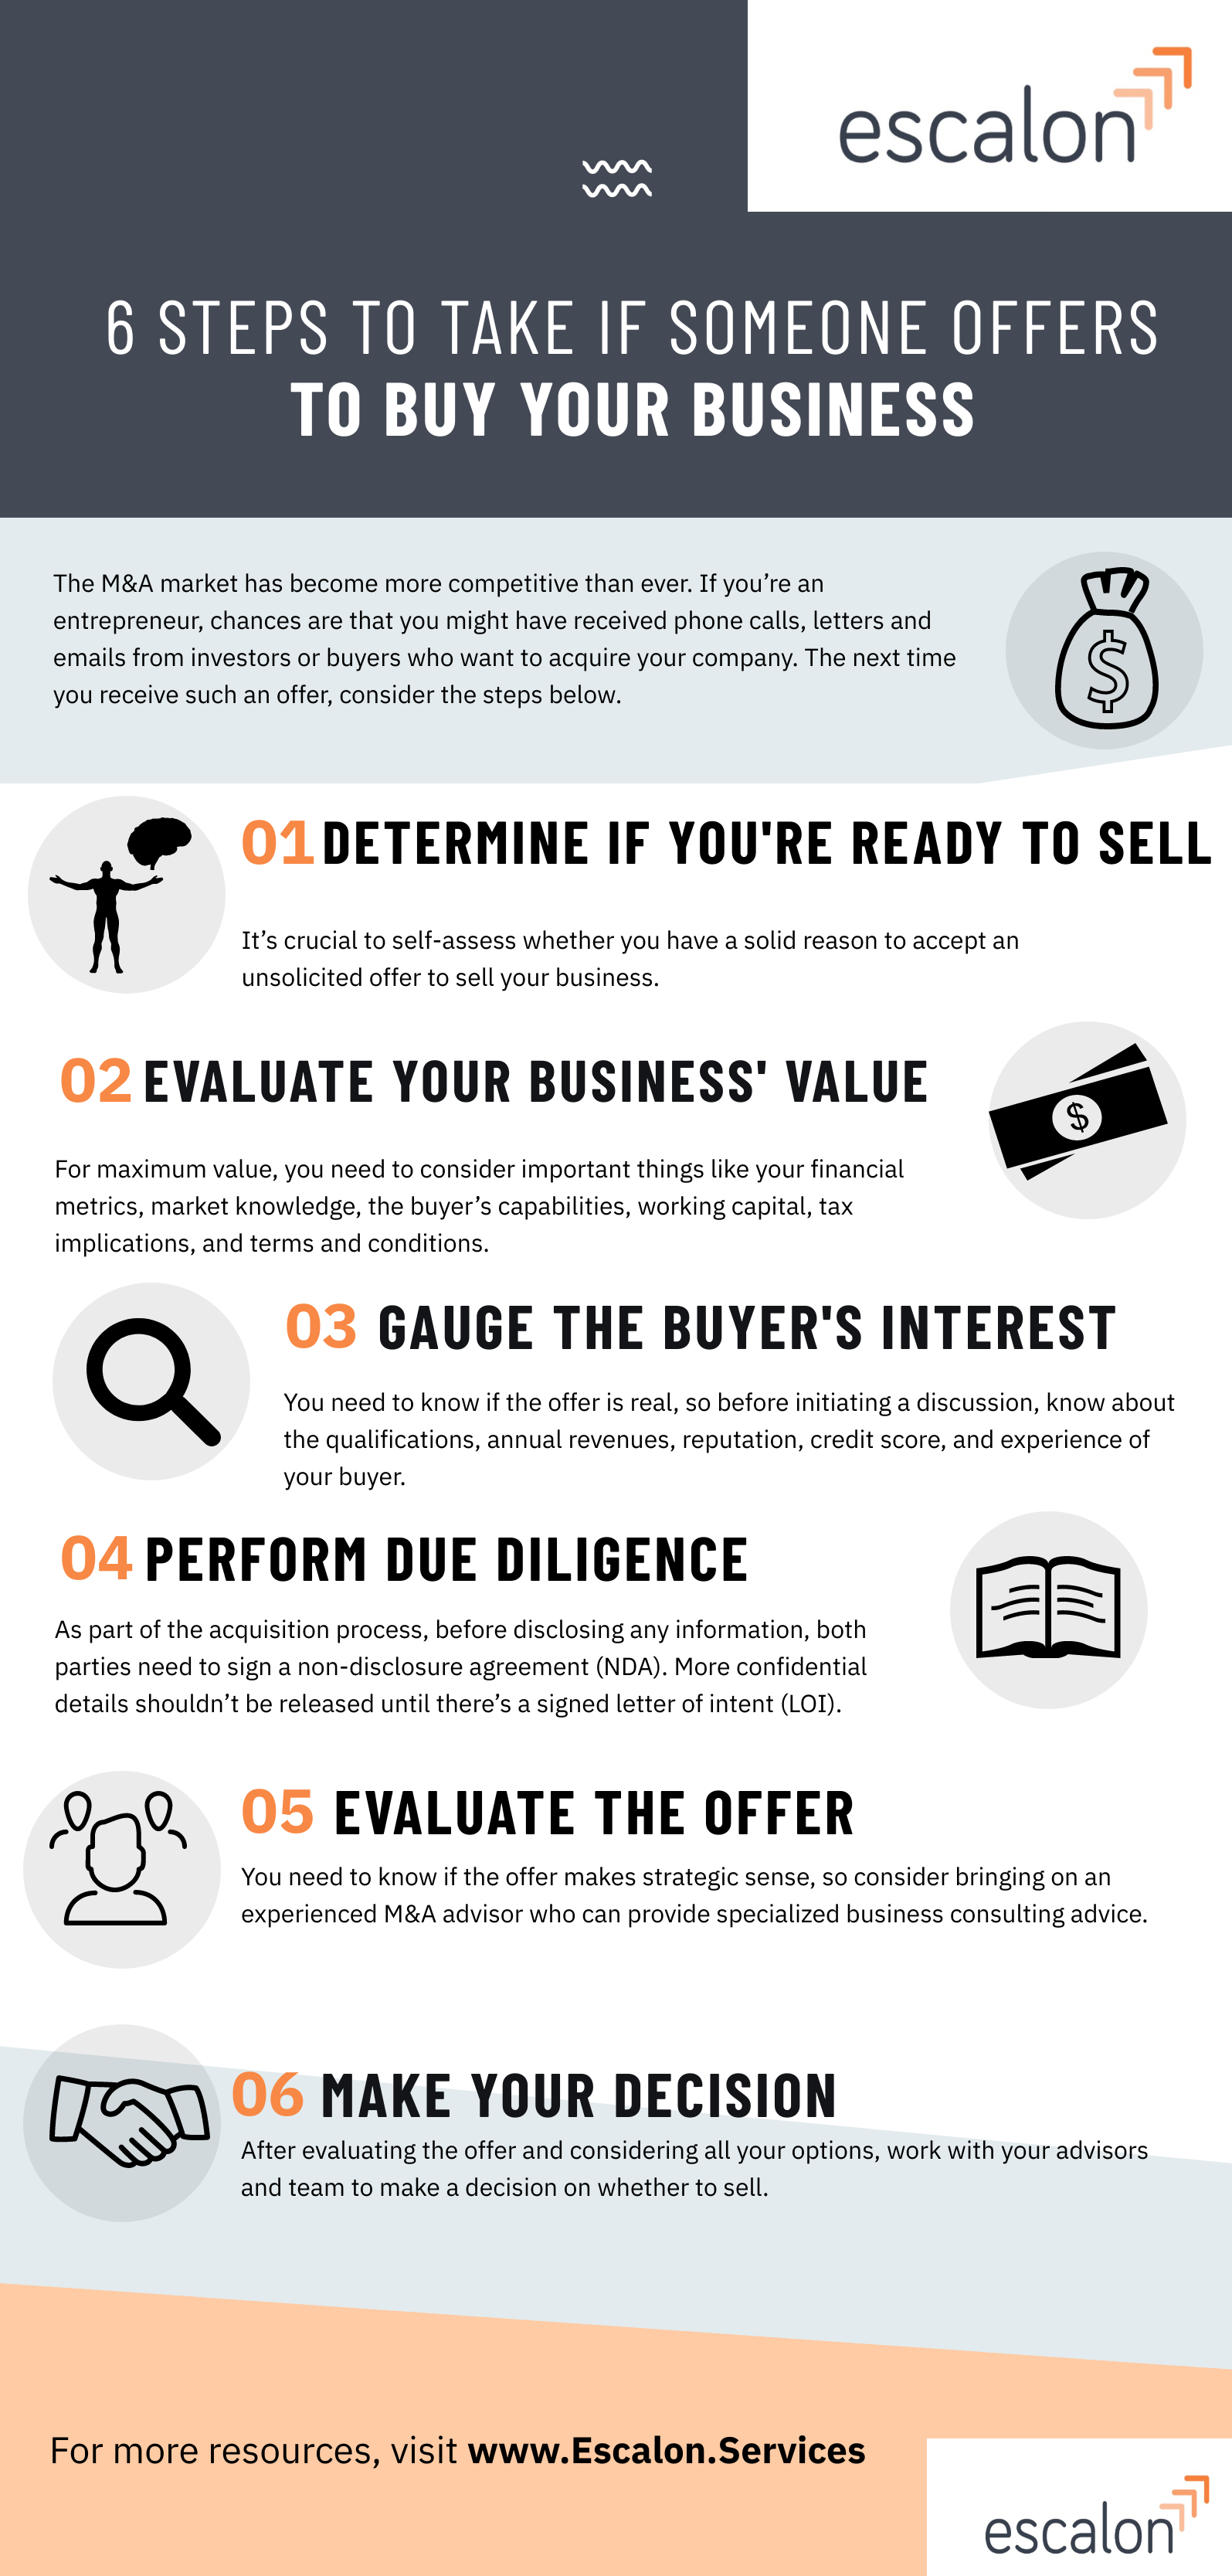 What to do if someone offers to buy your business